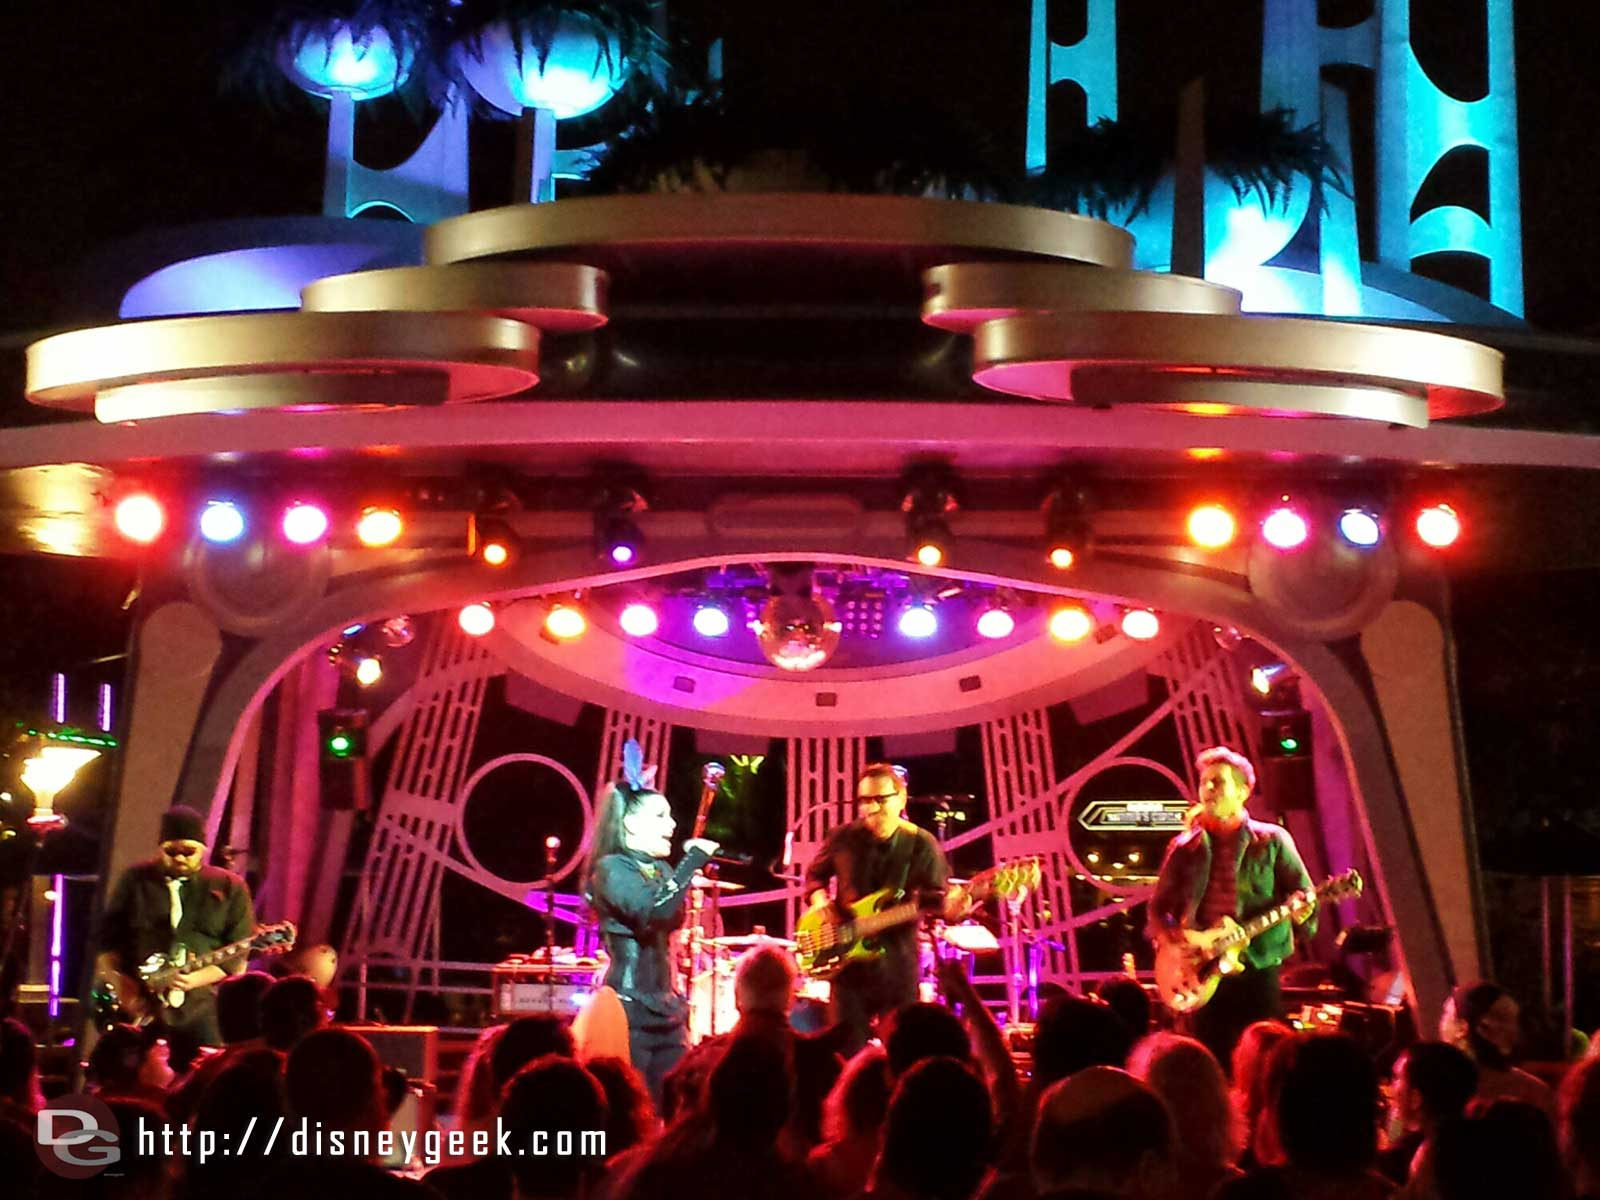 Tomasina is performing at Tomorrowland Terrace tonight